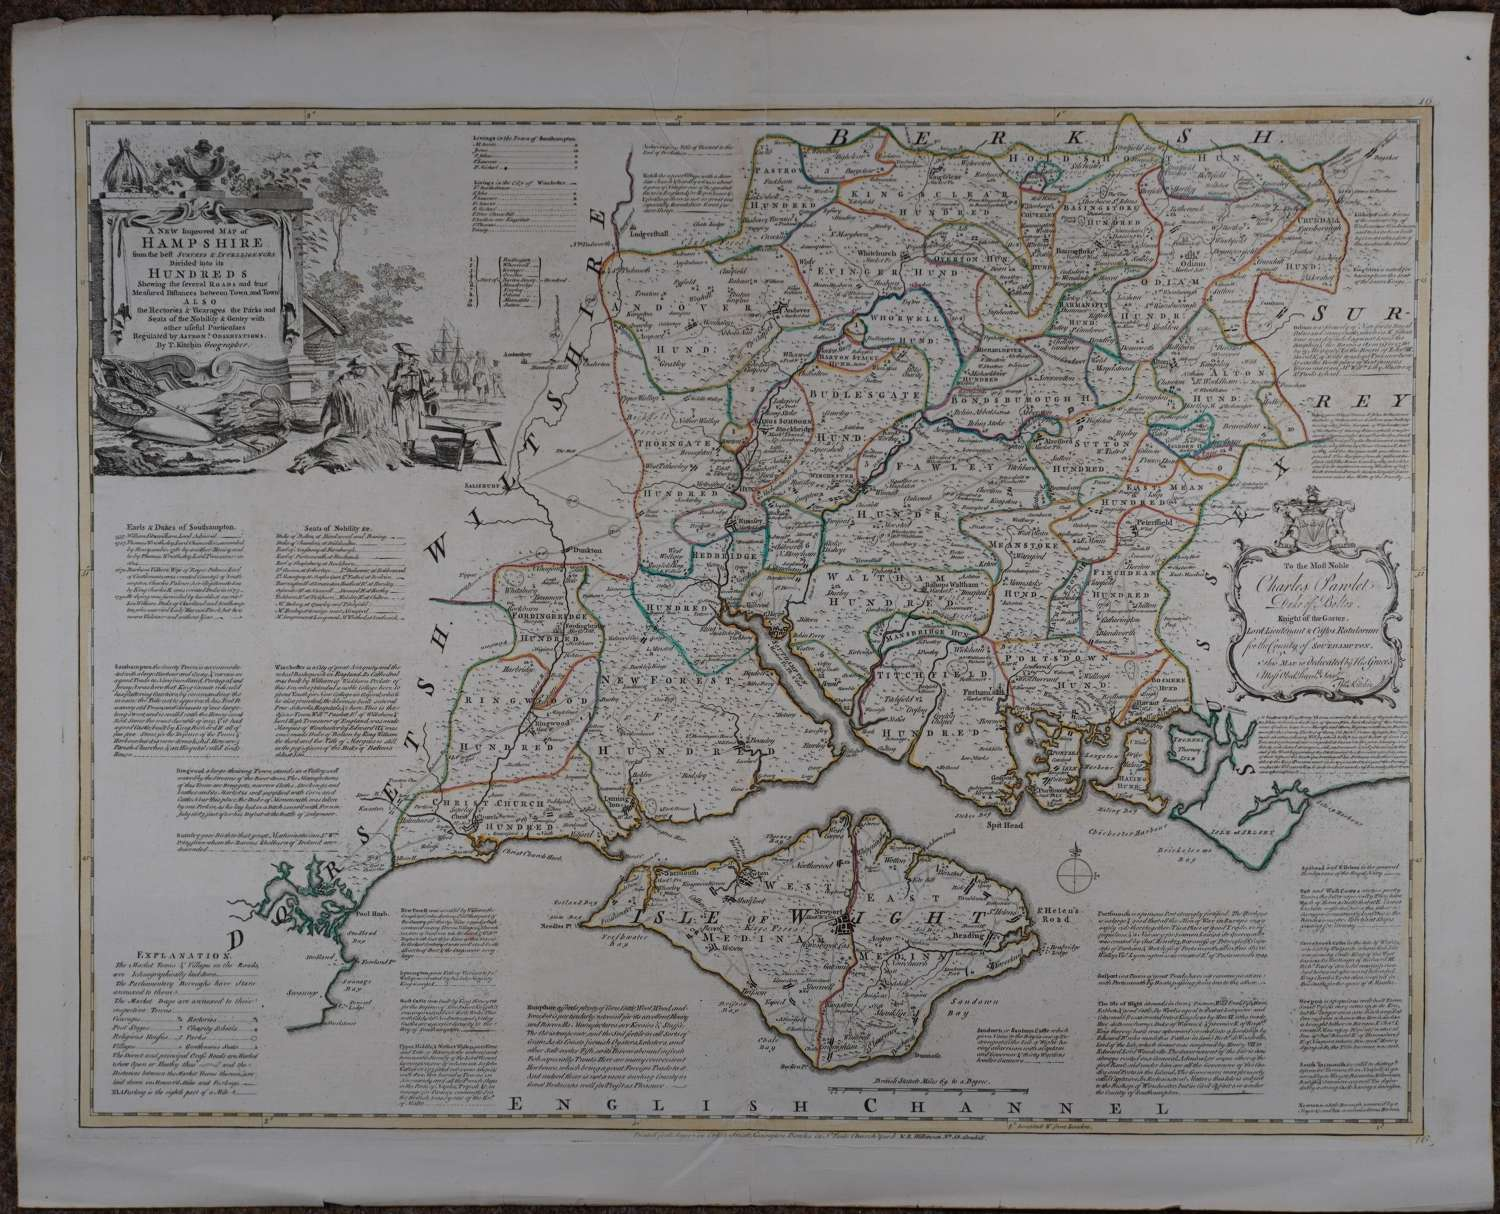 A New Improved Map of Hampshire by E Bowen,T Kitchin